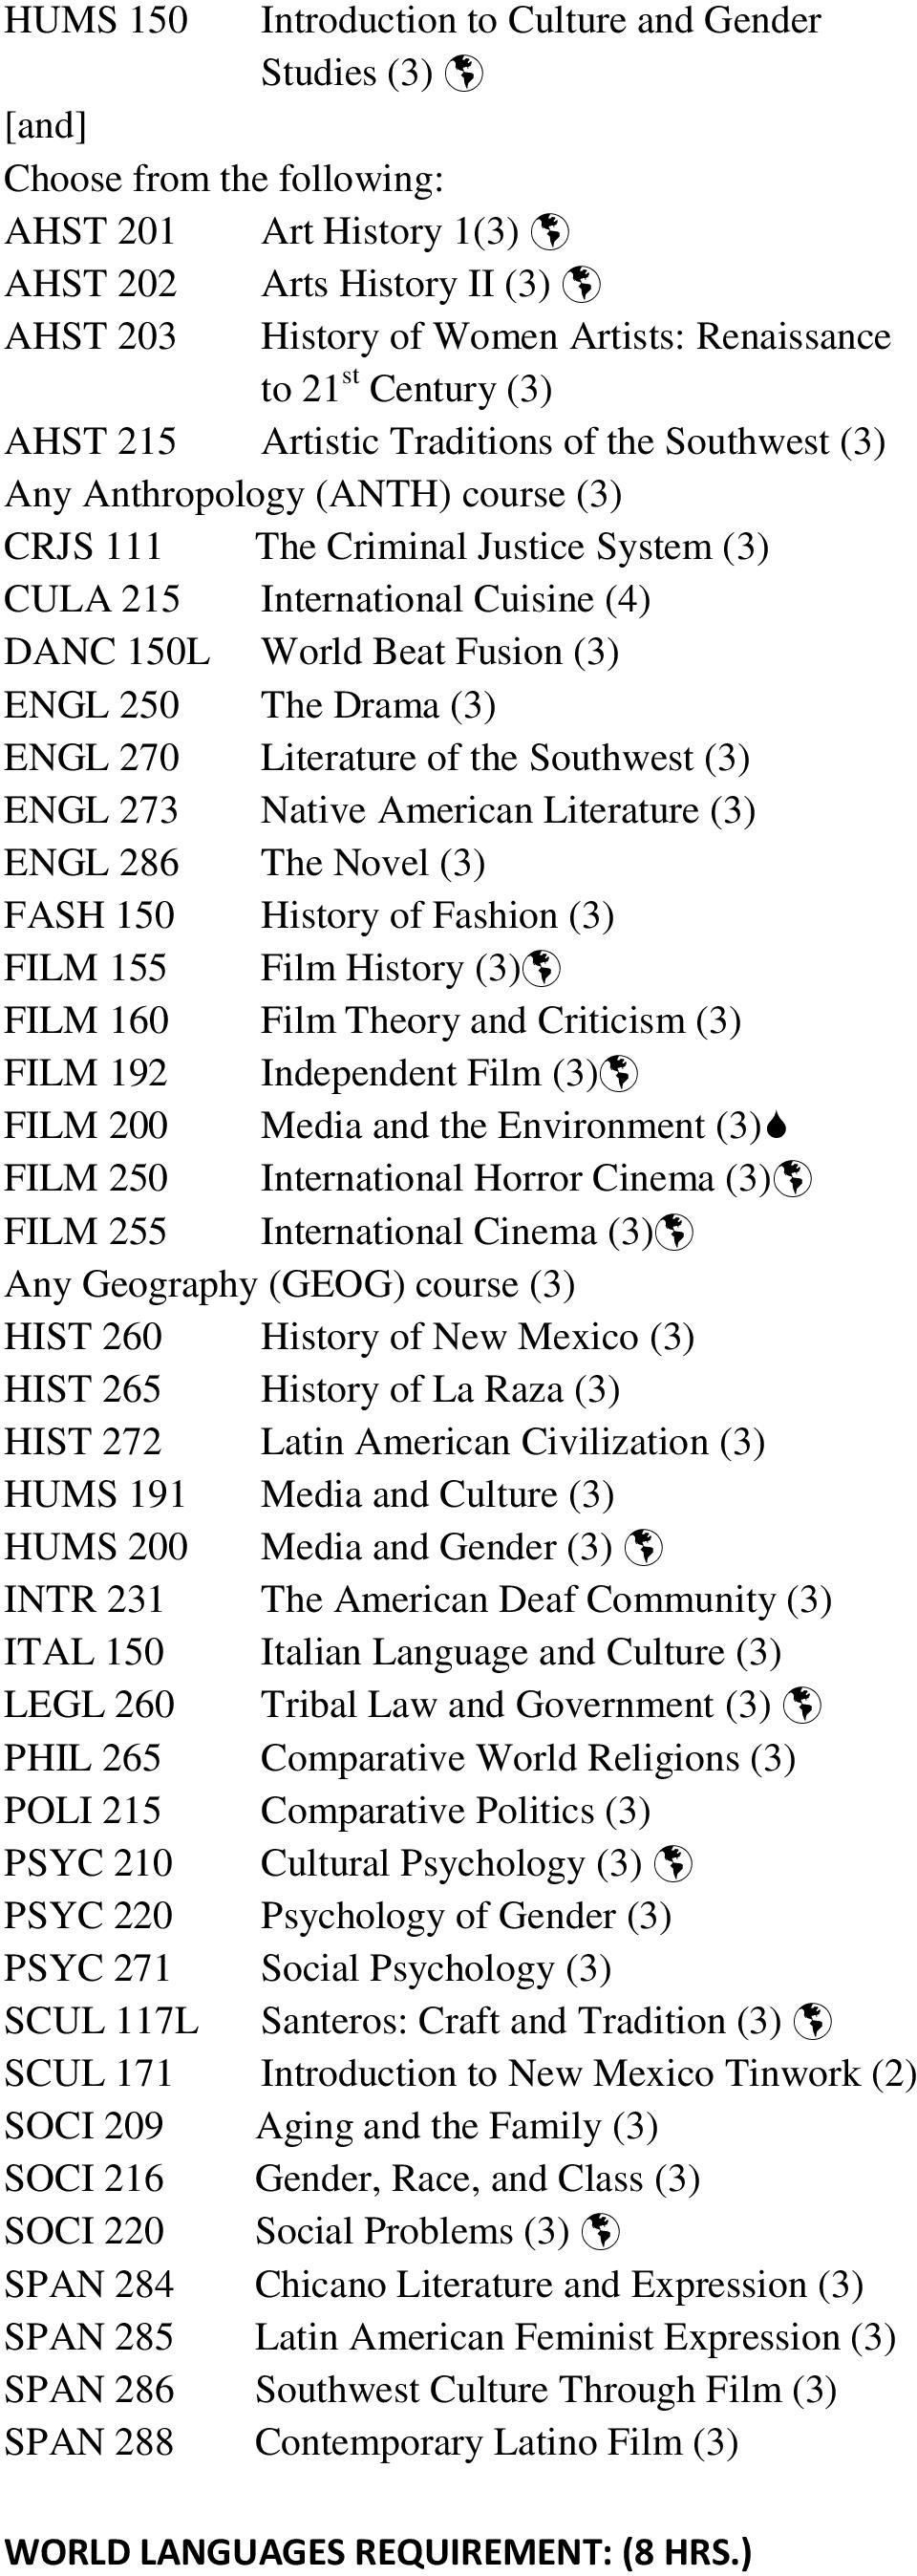 Fusion (3) ENGL 250 The Drama (3) ENGL 270 Literature of the Southwest (3) ENGL 273 Native American Literature (3) ENGL 286 The Novel (3) FASH 150 History of Fashion (3) FILM 155 Film History (3)